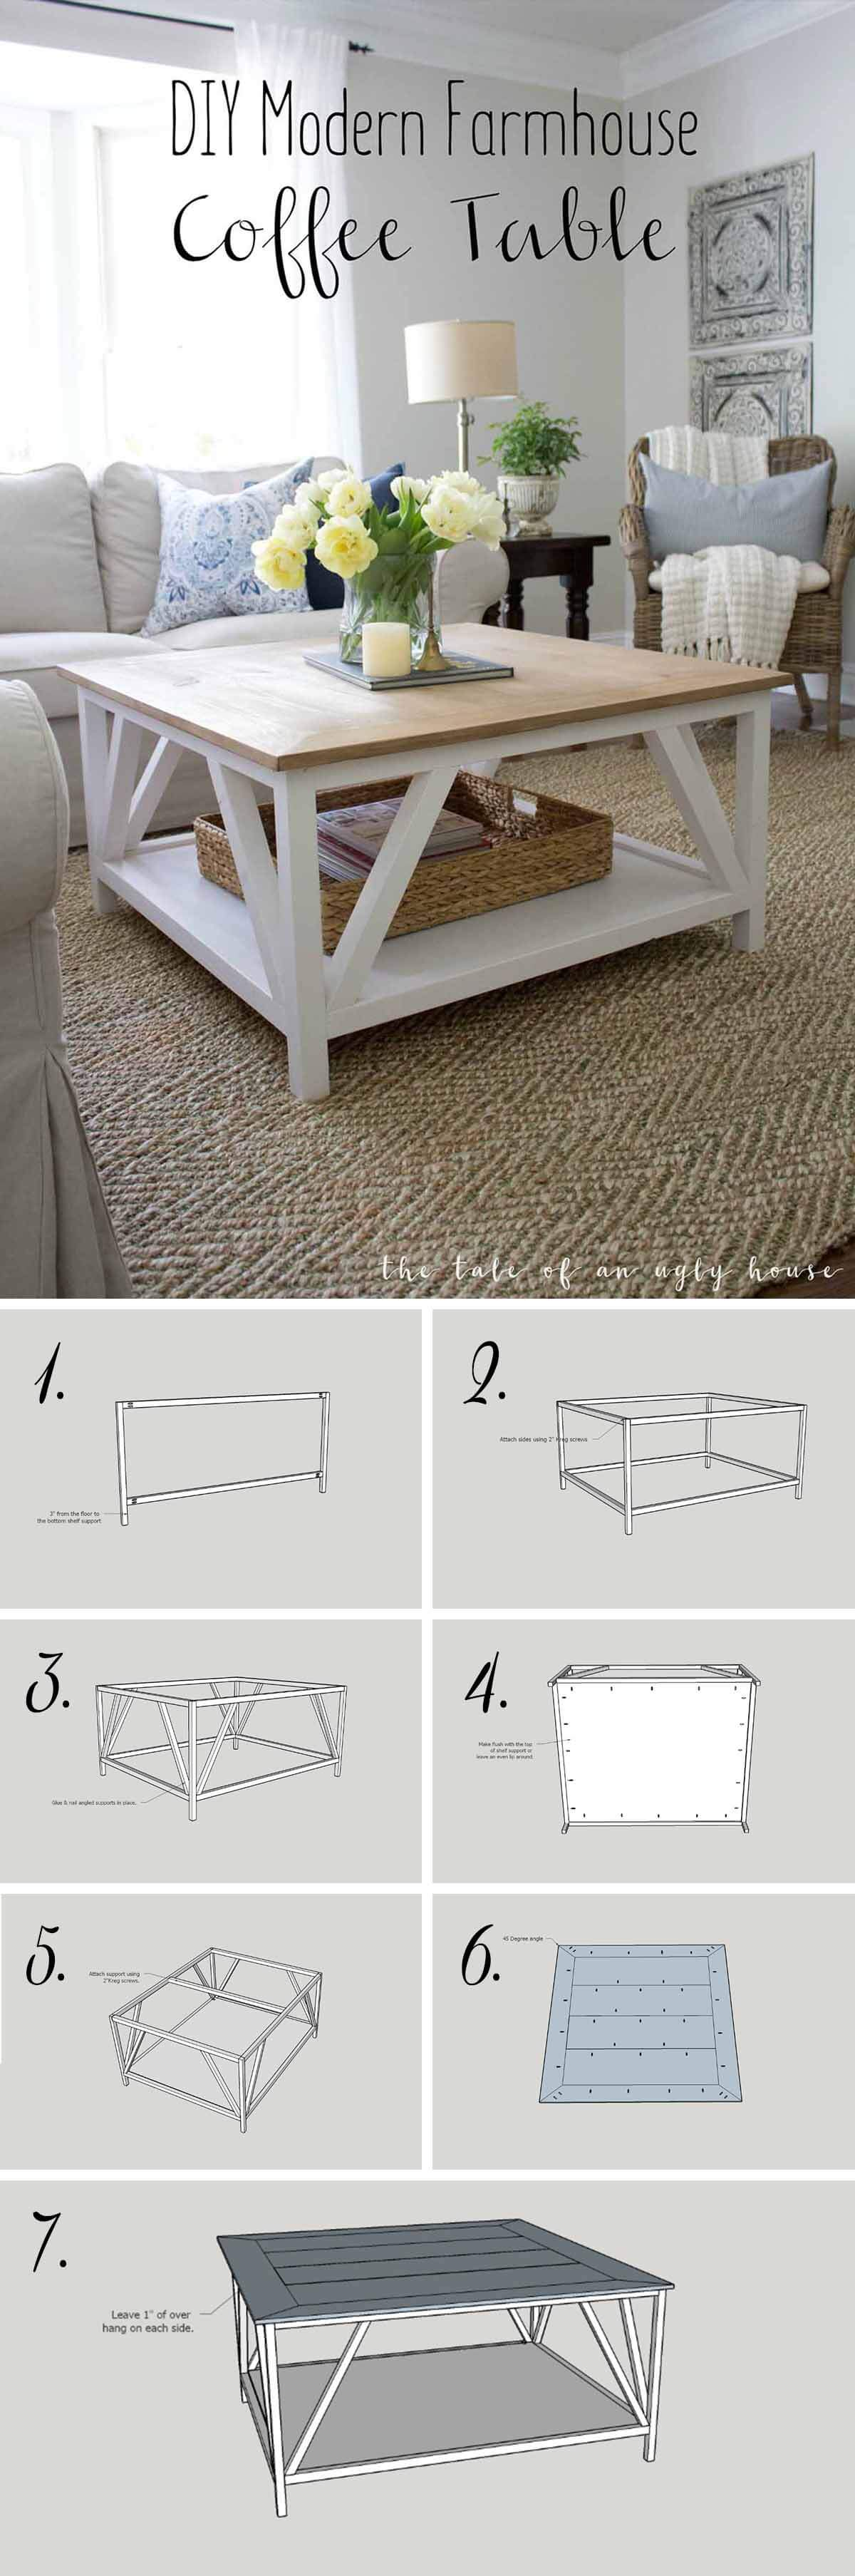 best diy farmhouse coffee table ideas and designs for homebnc small accent pretty cottage inspired bright white look silver wall clock trestle dining round foyer entry extra long